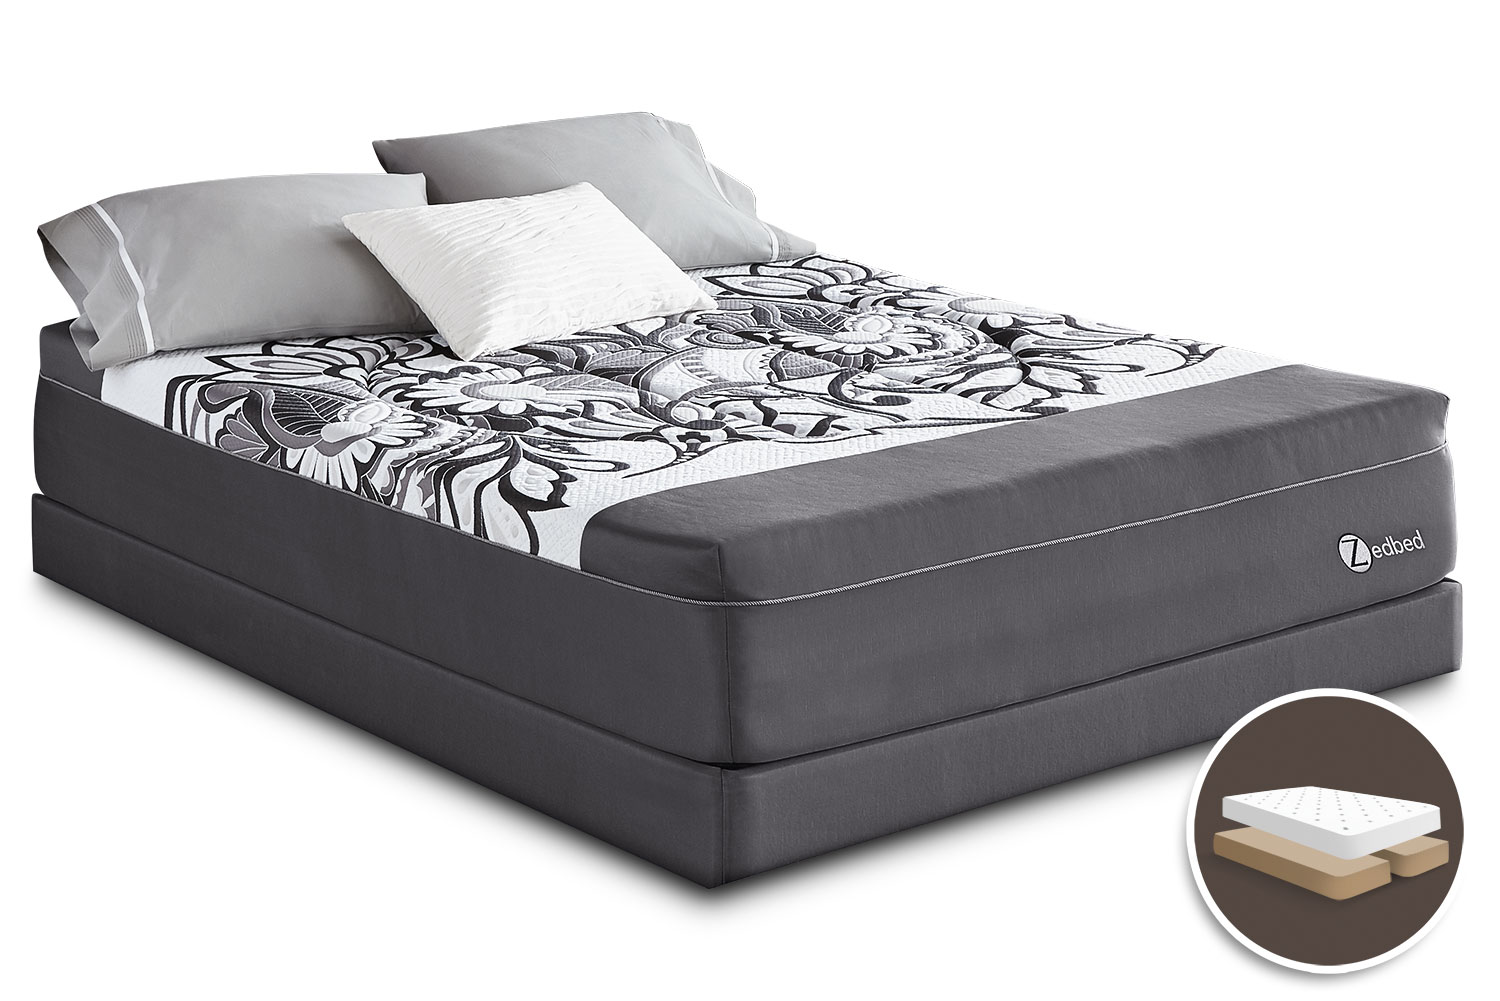 Mattresses and Bedding - Zedbed Vertuo Deluxe Tight-Top Queen Set with Split Boxspring